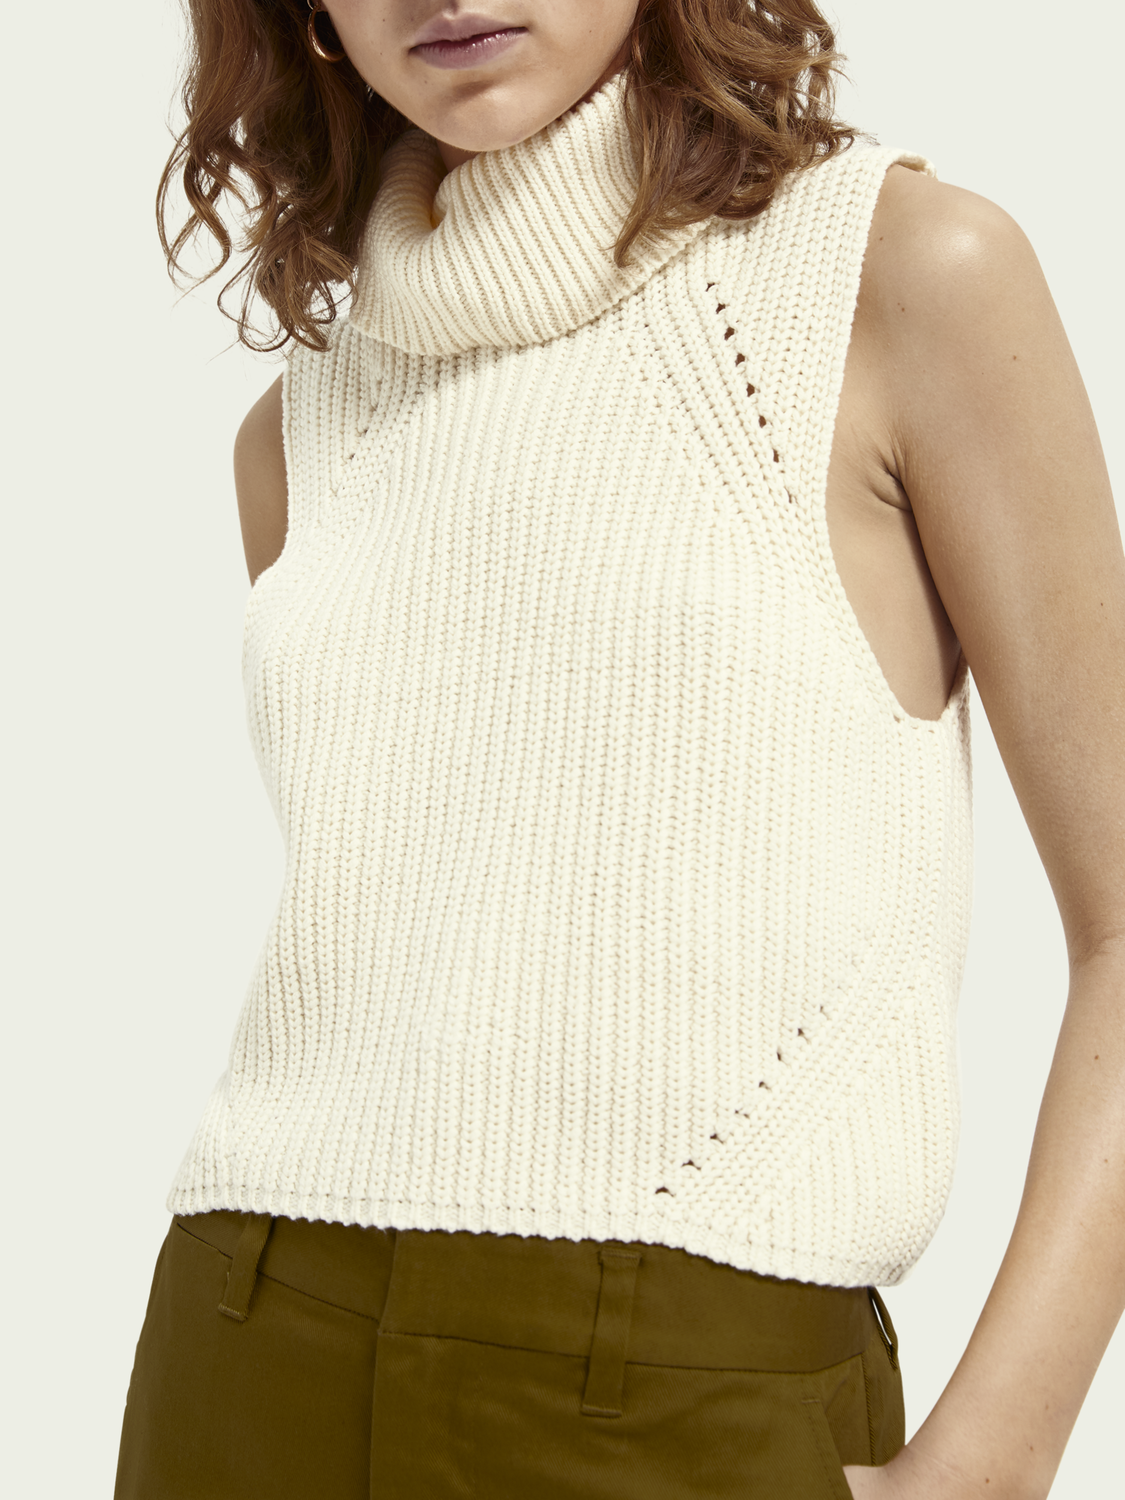 Women Knitted turtleneck short-sleeved sweater